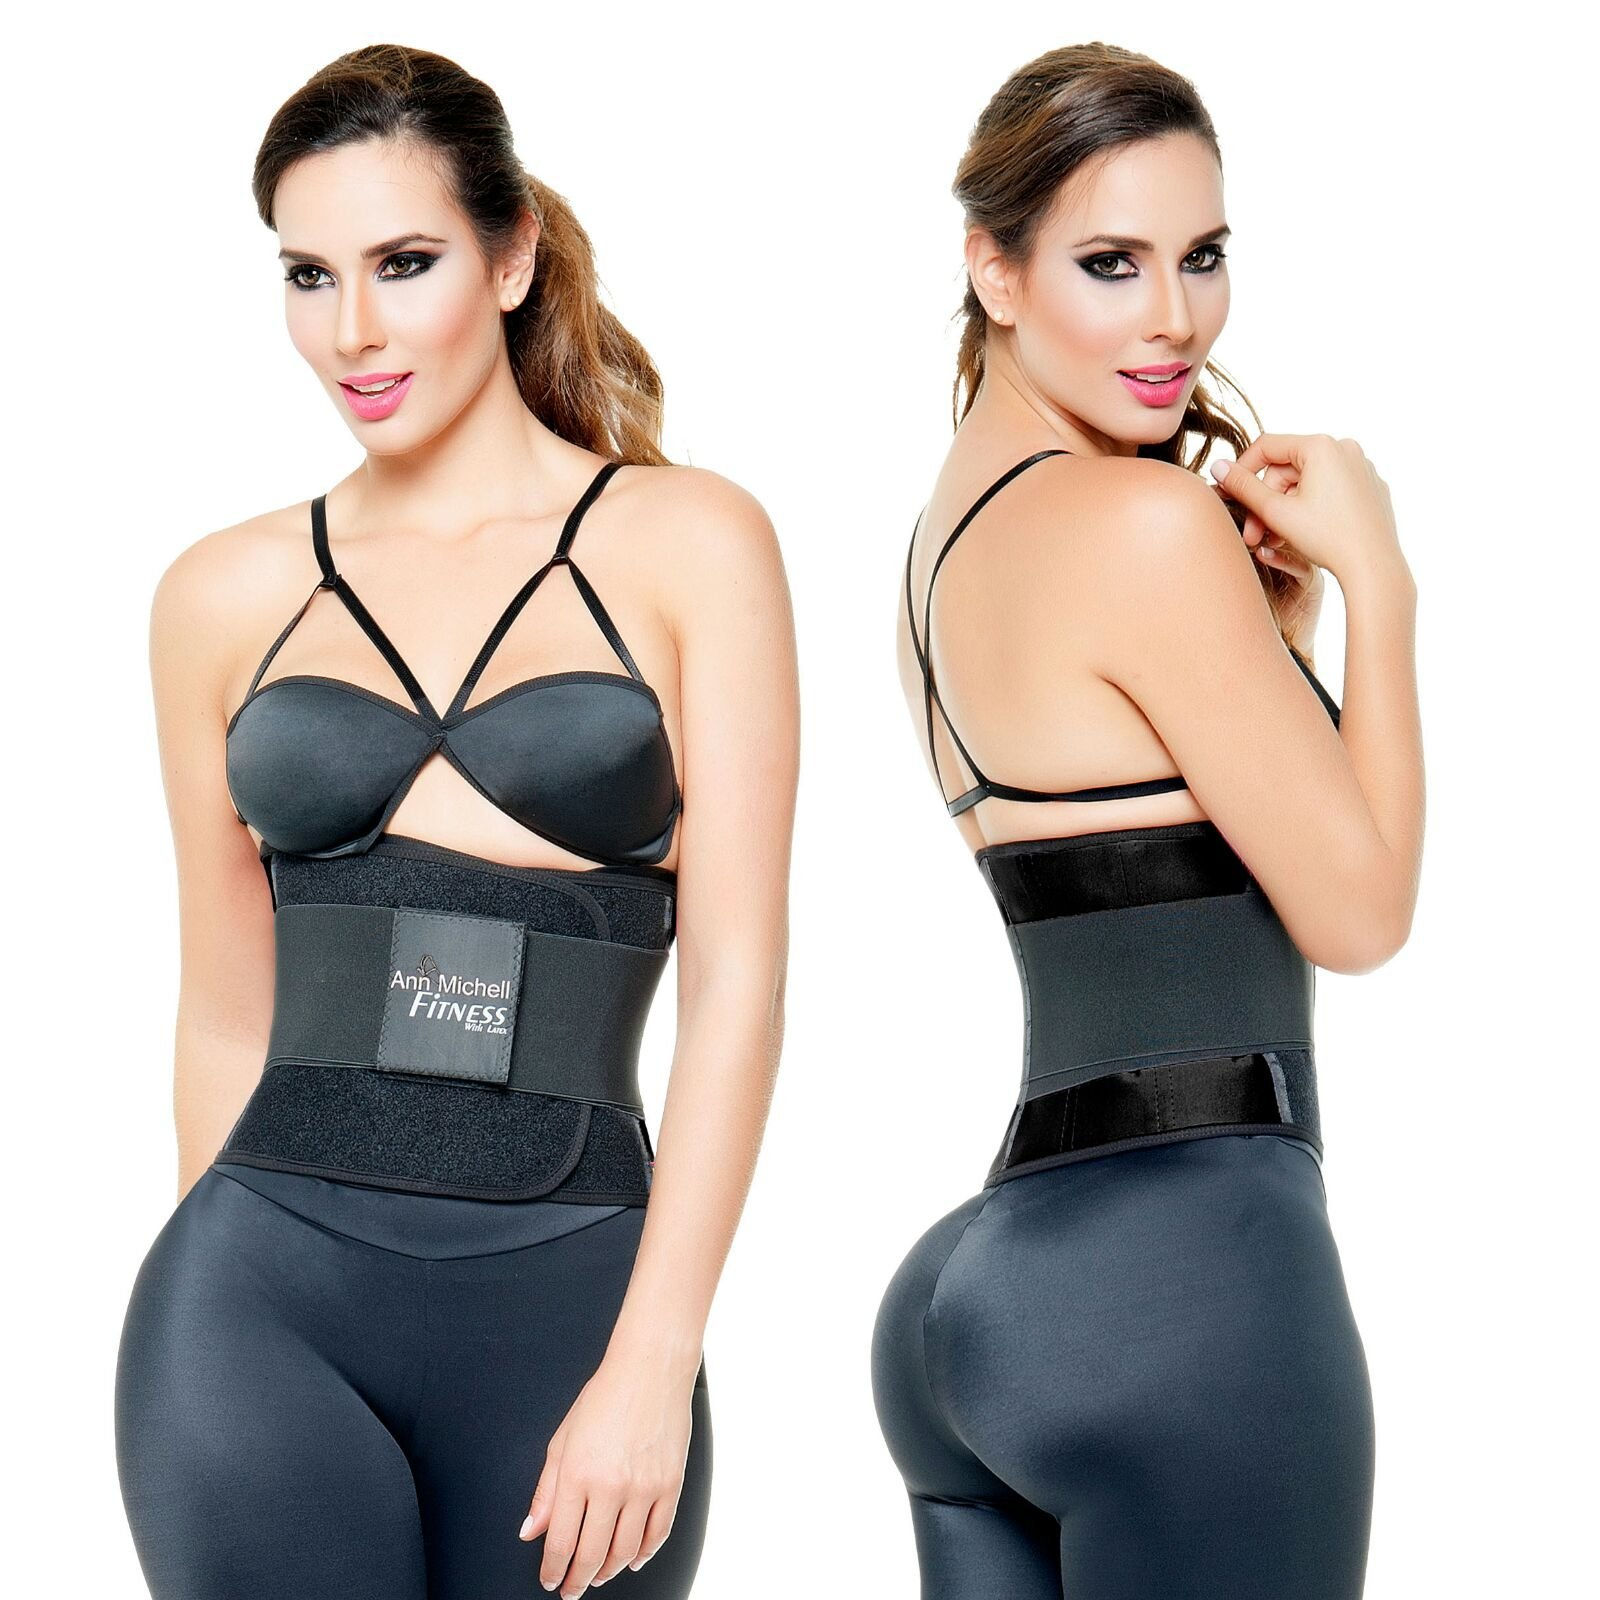 da662ac726 Ann Michell 4025 Fitness Thermo Latex Xtreme and 50 similar items